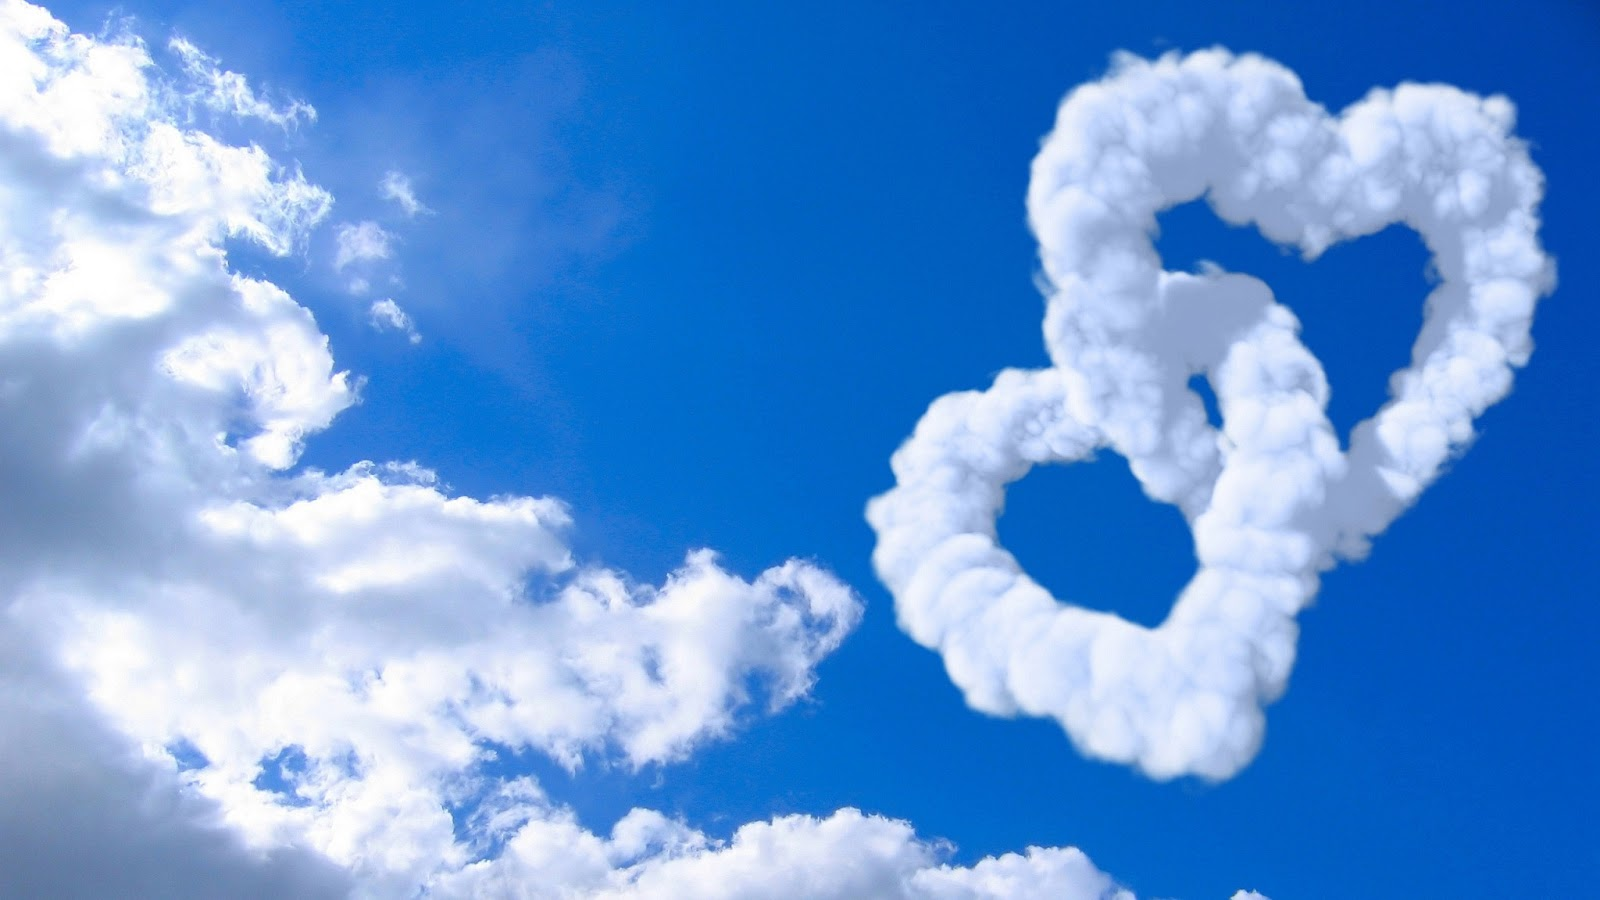 Wallpaper Desk 3d love with clouds wallpaper love wallpapers 1600x900